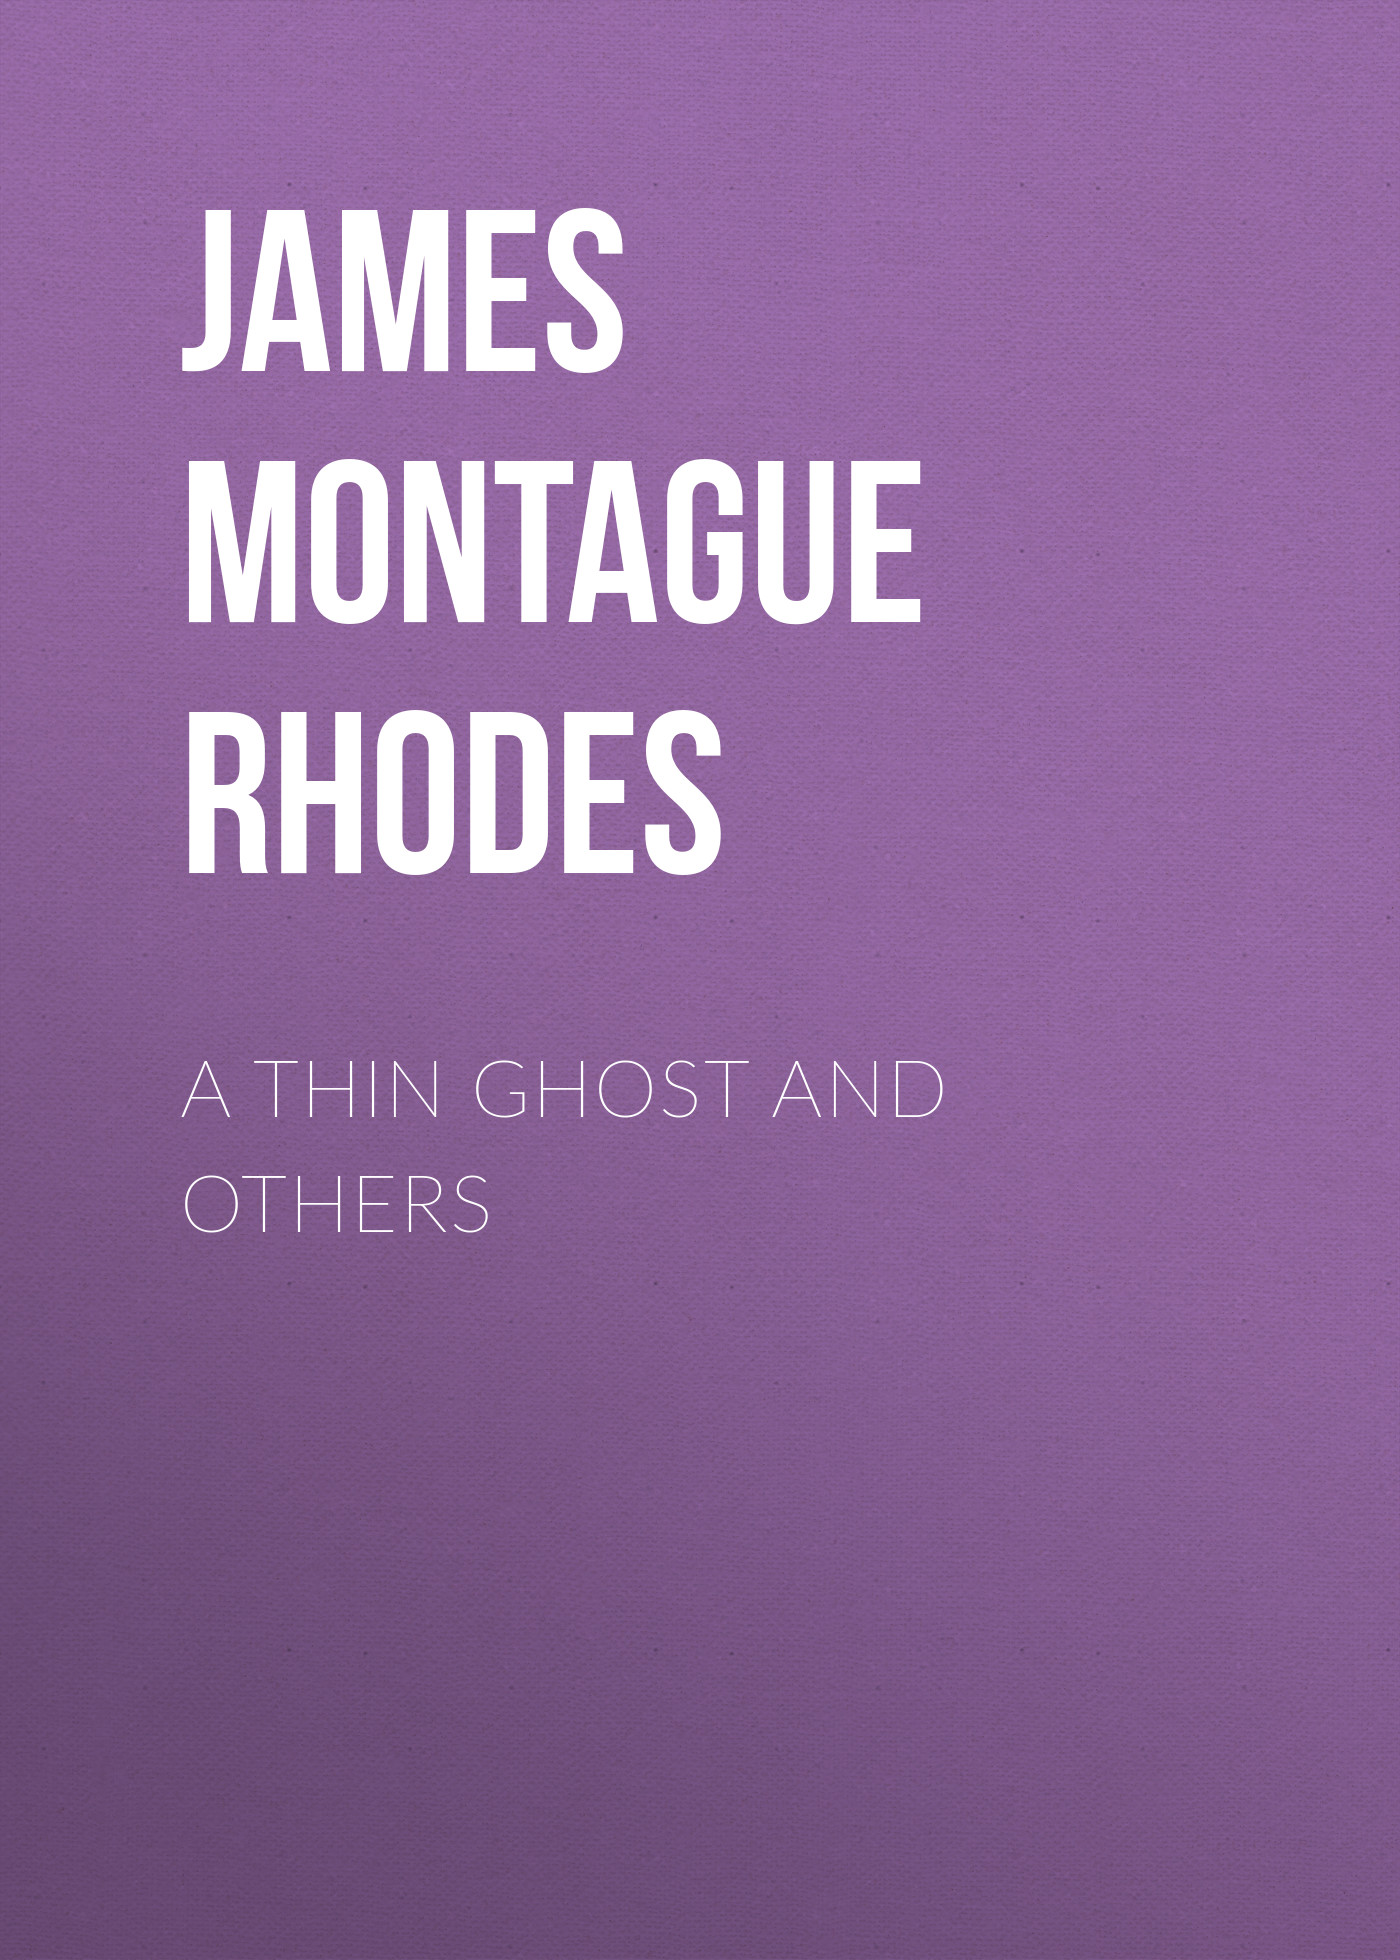 лучшая цена James Montague Rhodes A Thin Ghost and Others